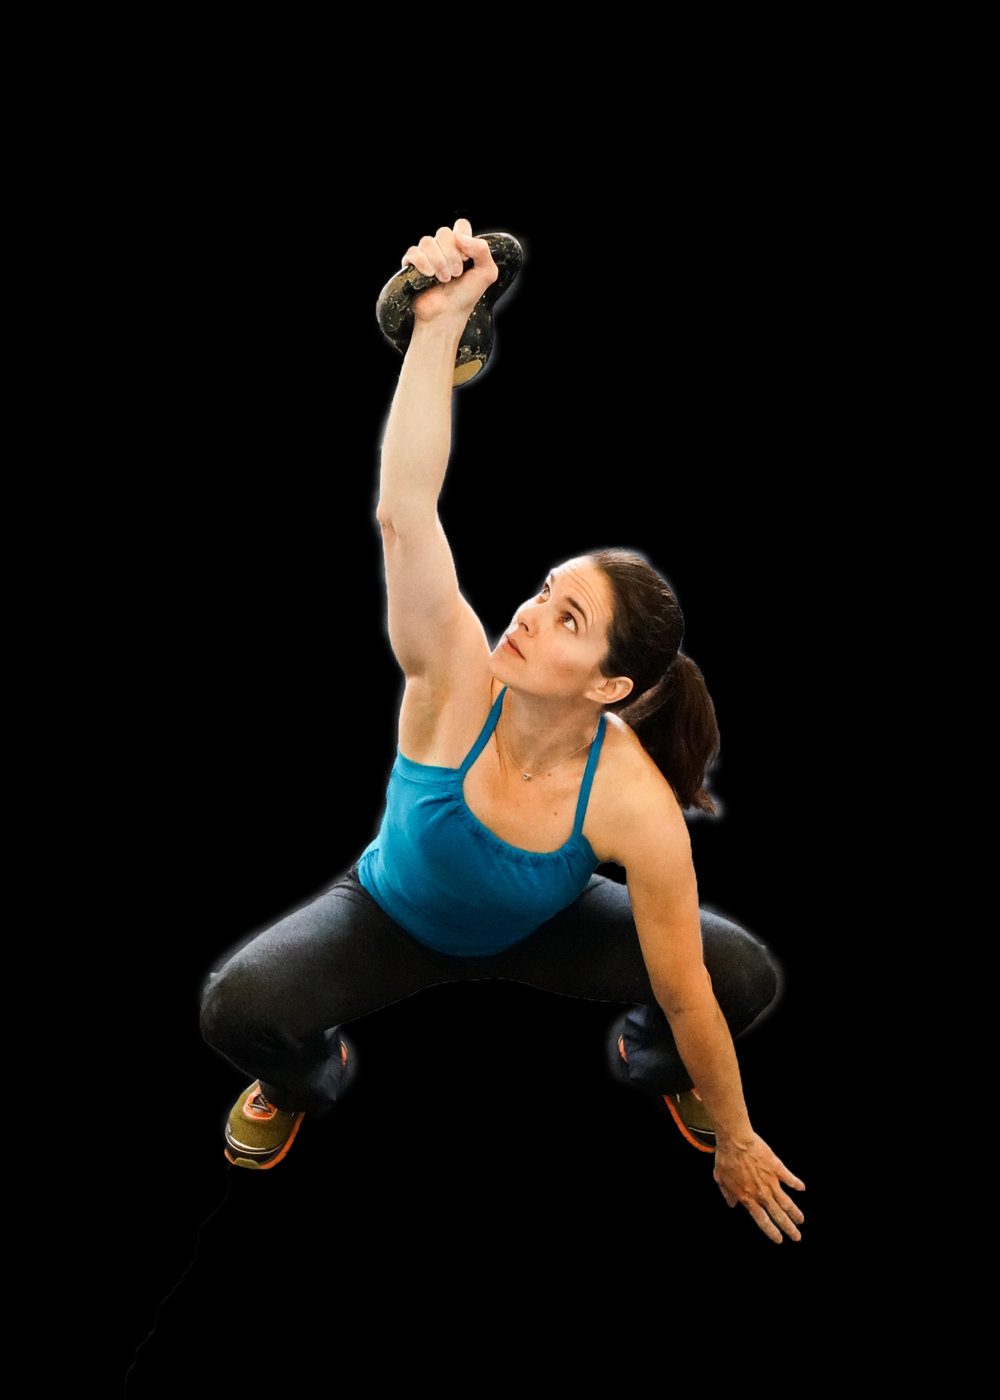 The Work Behind the Body strength beauty women athletes